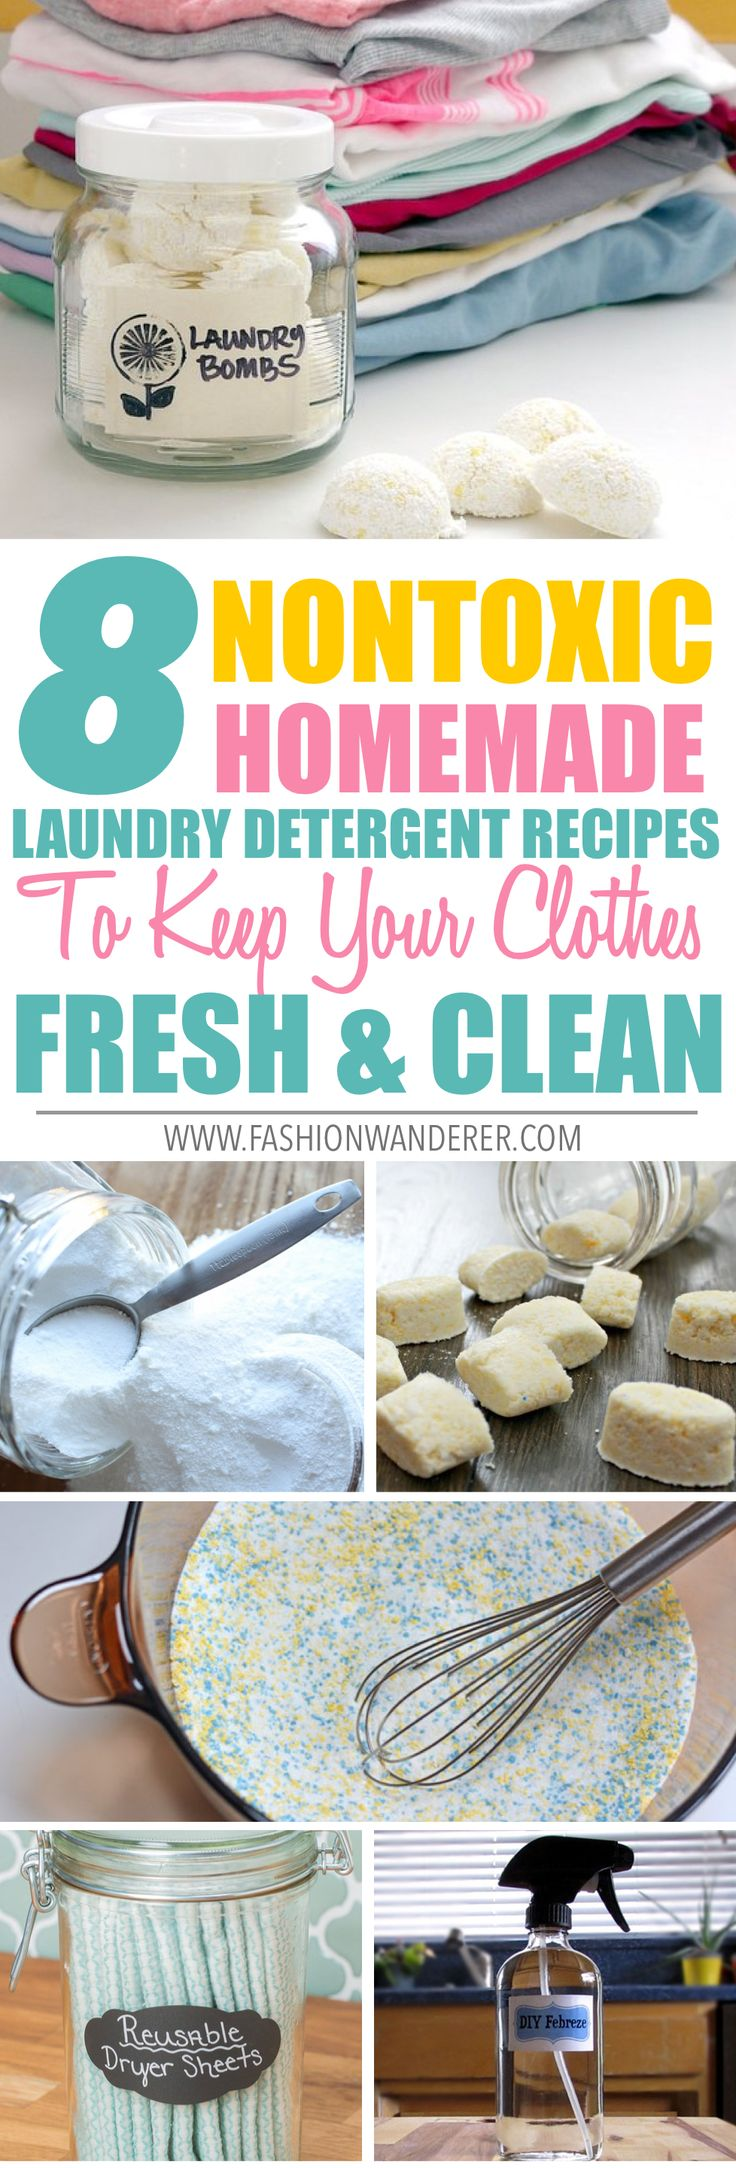 These 8 nontoxic homemade laundry detergent recipes are THE BEST! I'm so glad to find these awesome natural recipes not only they works with any clothes but also it is chemical-free and budget friendly and super easy to make! I have sensitive skin and using essential oils really helps! From DIY febreze, liquid and powder detergents with no borax to laundry dry sheets, laundry pods, fabric softener and many more! Definitely pinning!   #laundrytips #homemade #nontoxic #recipes #cleaningtricks…